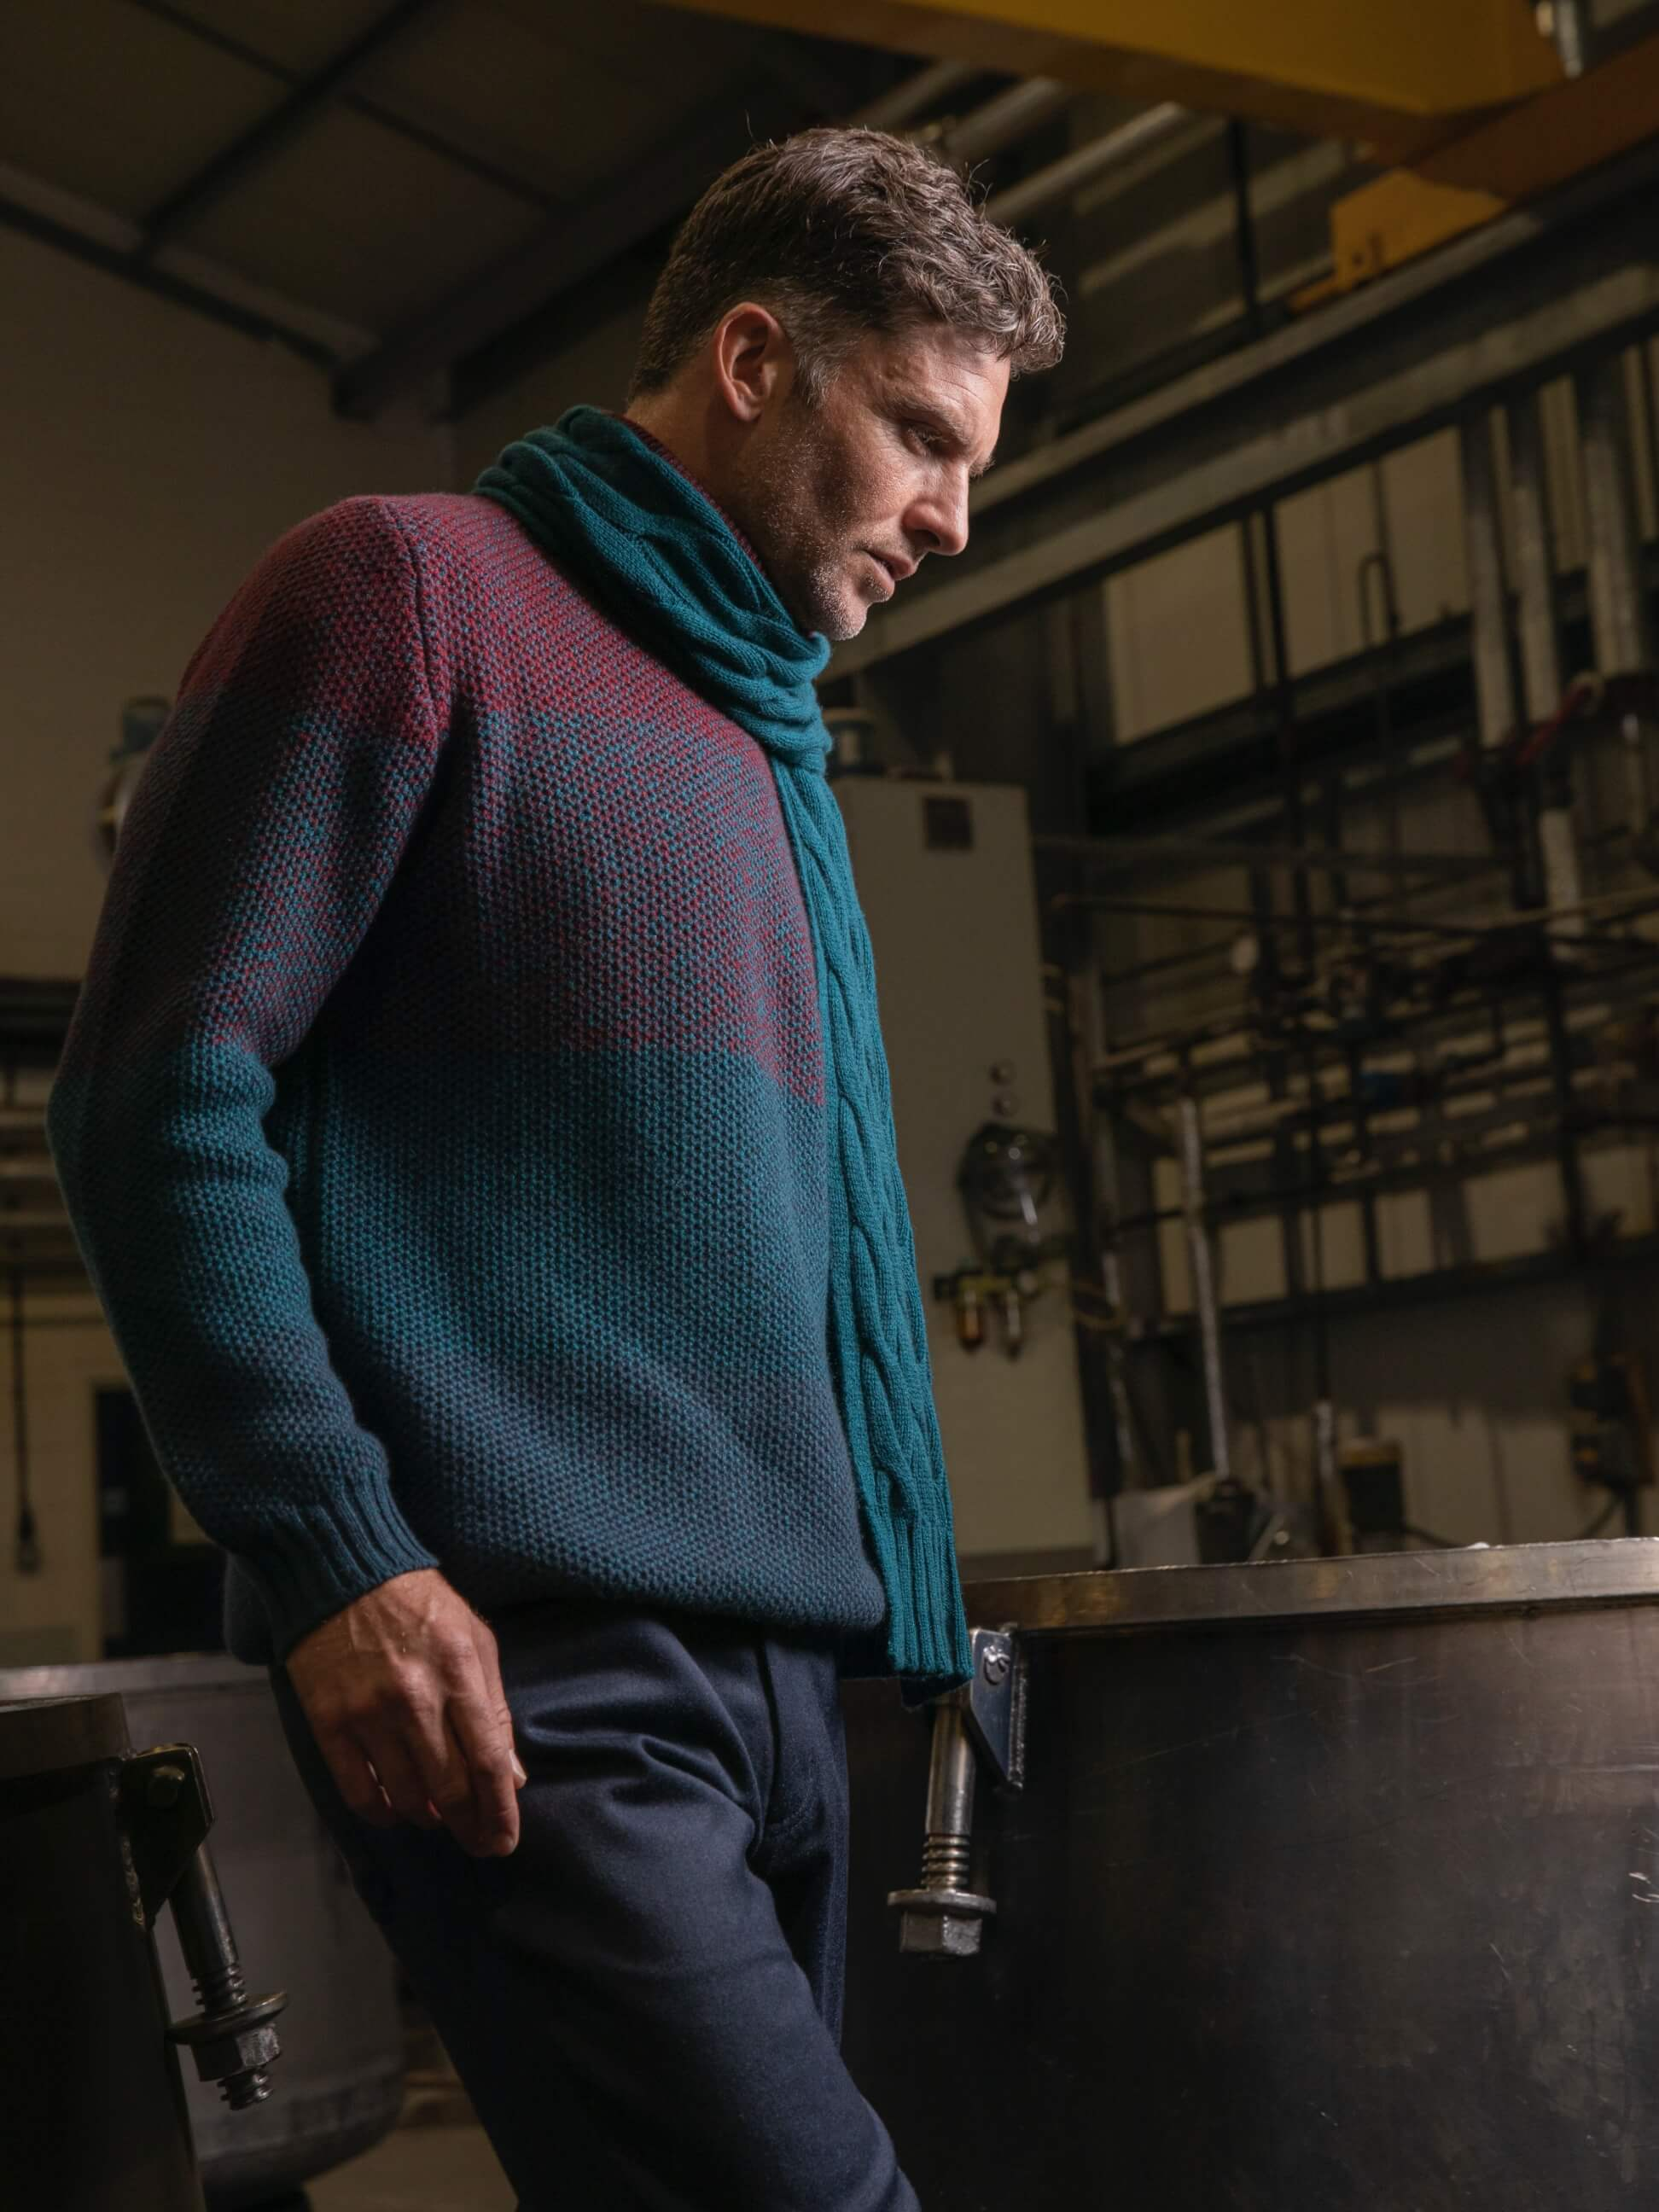 Johnstons of Elgin model wearing ombre cashmere in the Johnstons of Elgin dyehouse